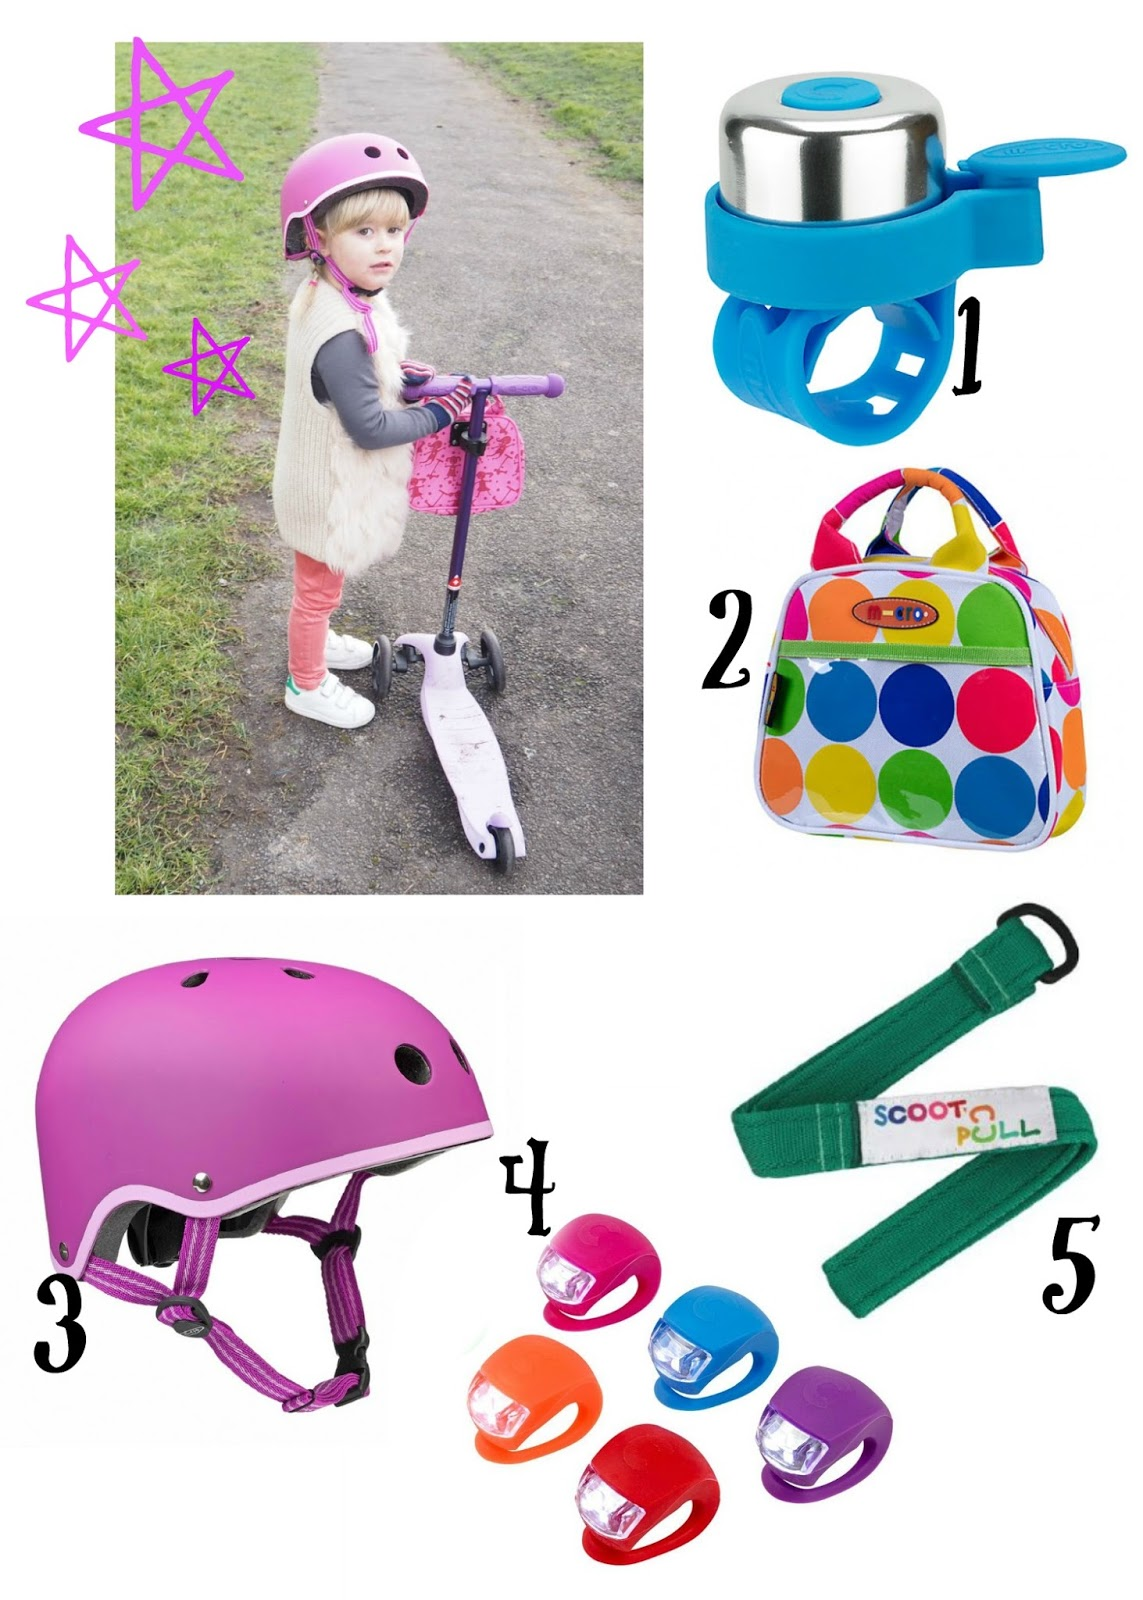 mamasVIB | V. I. BUSY BEES: Micro Scooters for all the family - and the perfect places to scoot